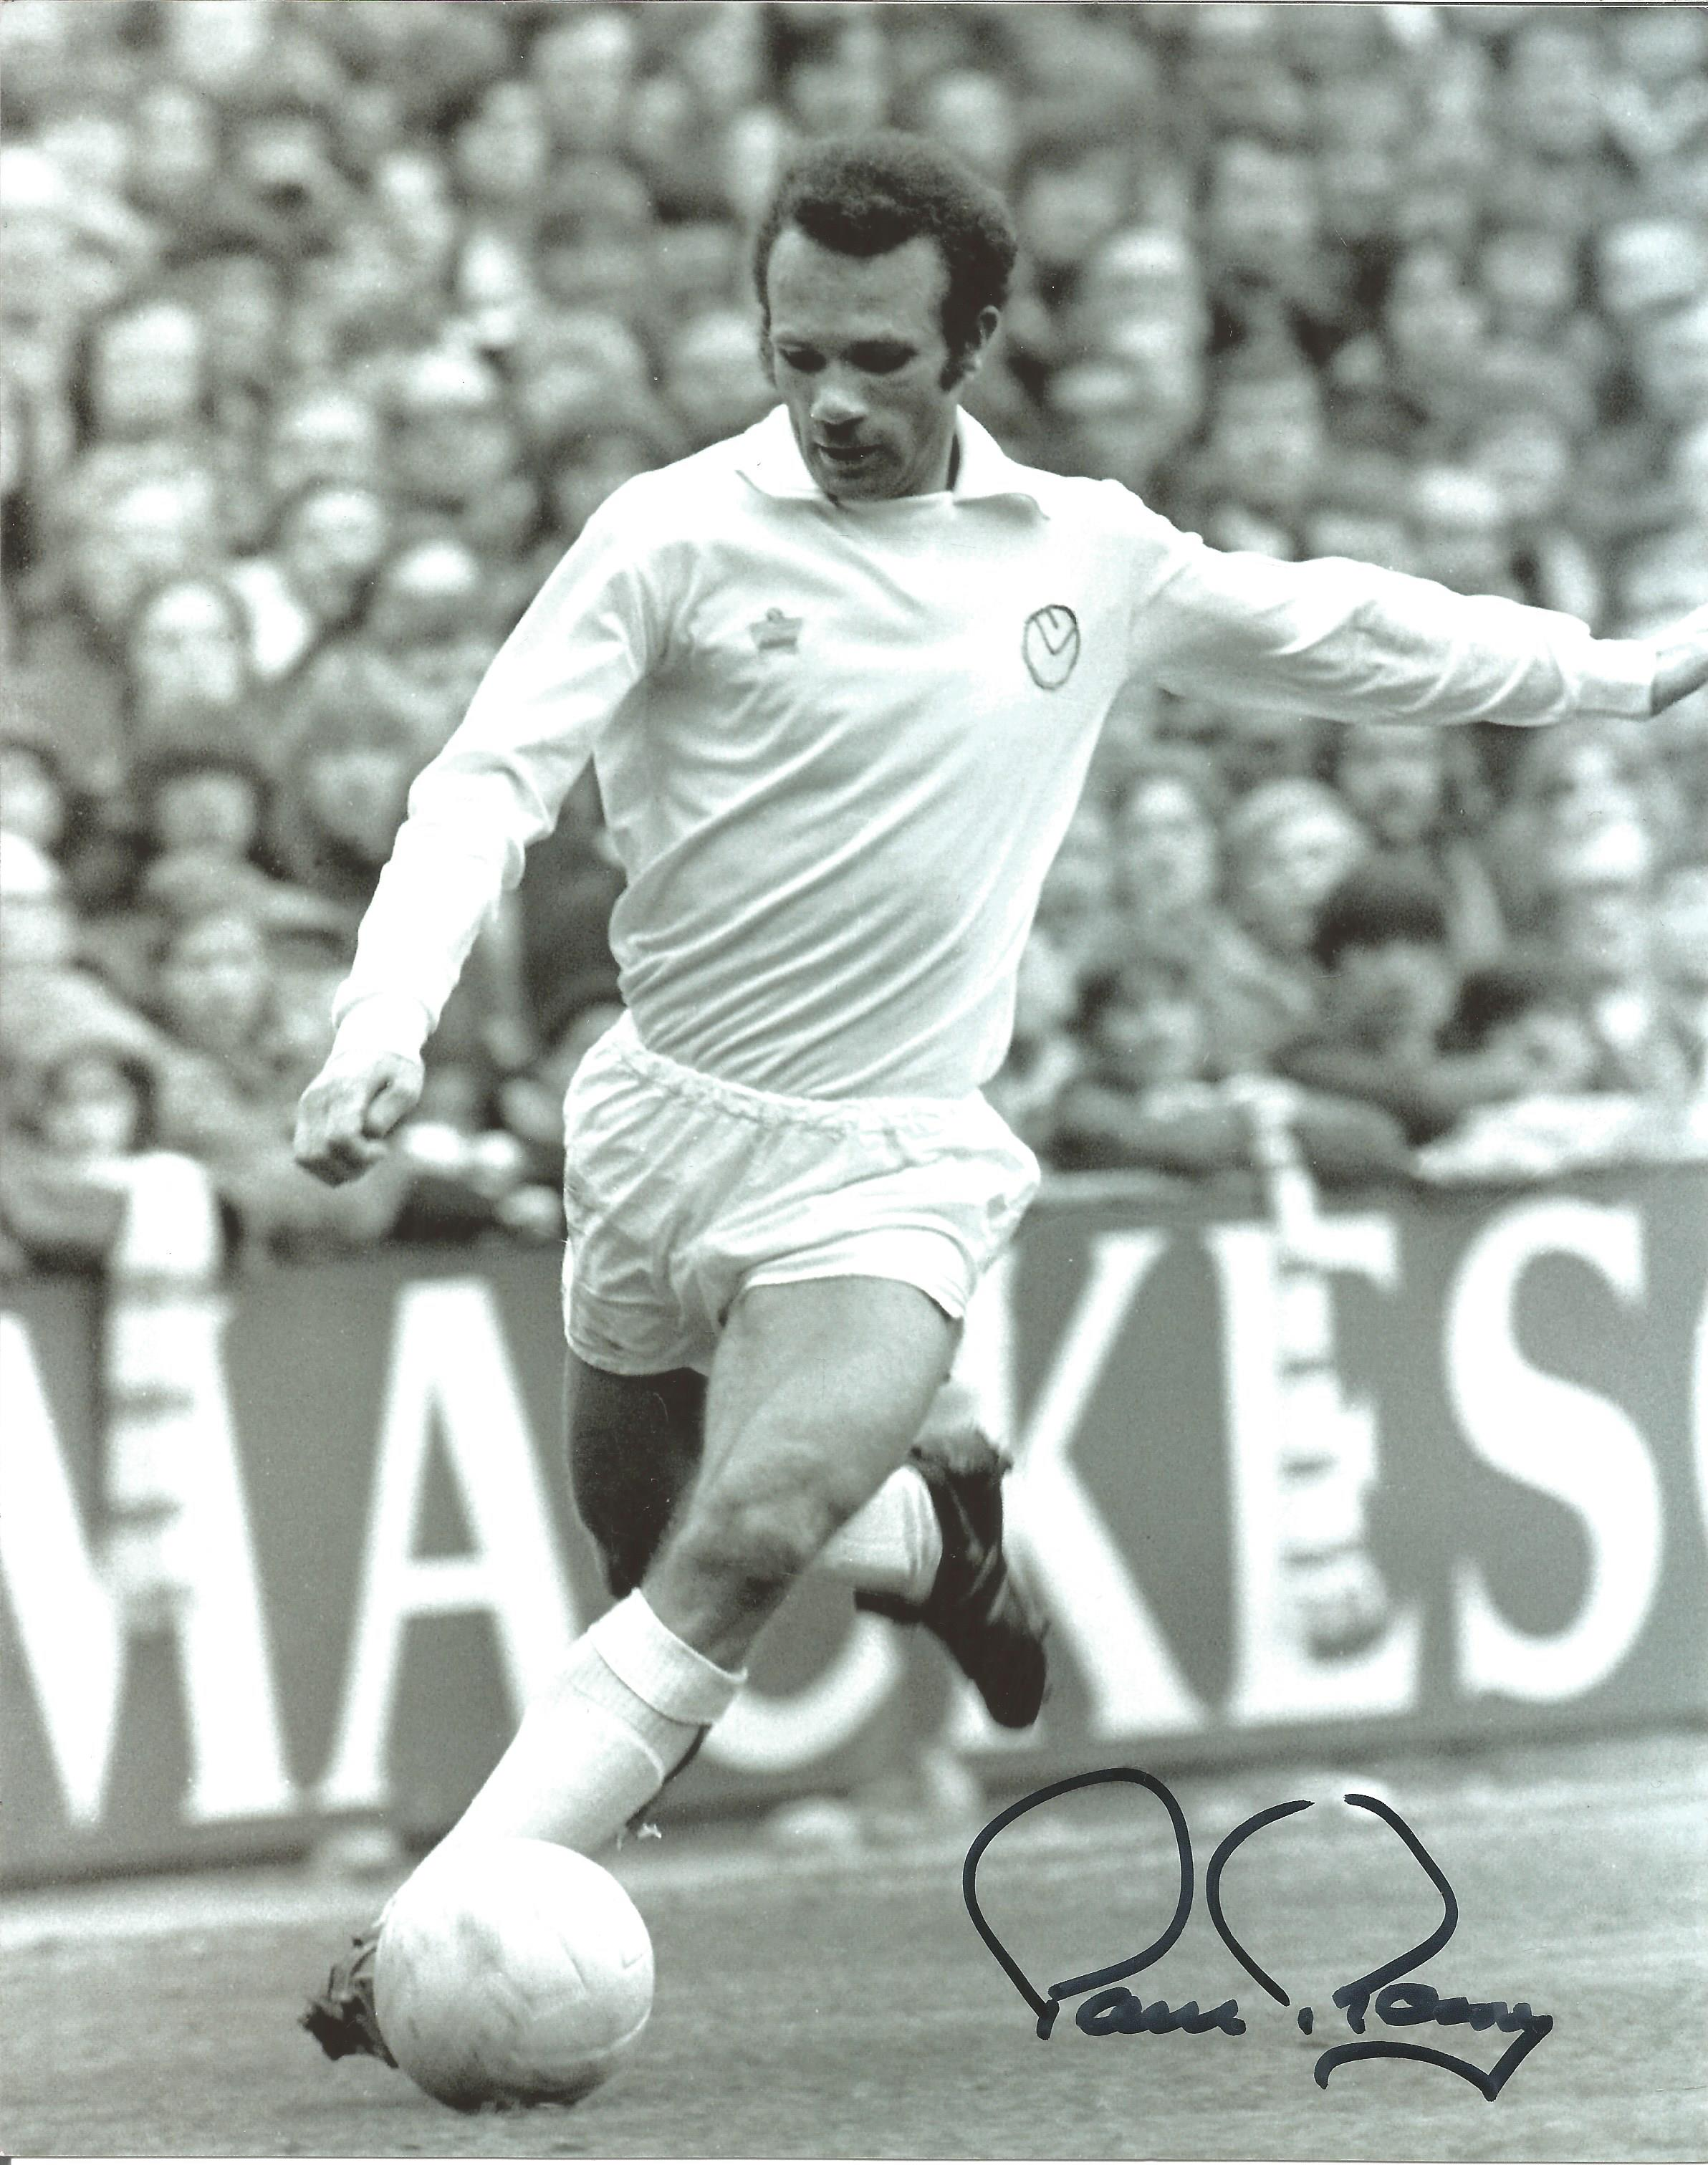 Paul Reaney Signed 8x10 Leeds United Photo. Good Condition. All autographs are genuine hand signed